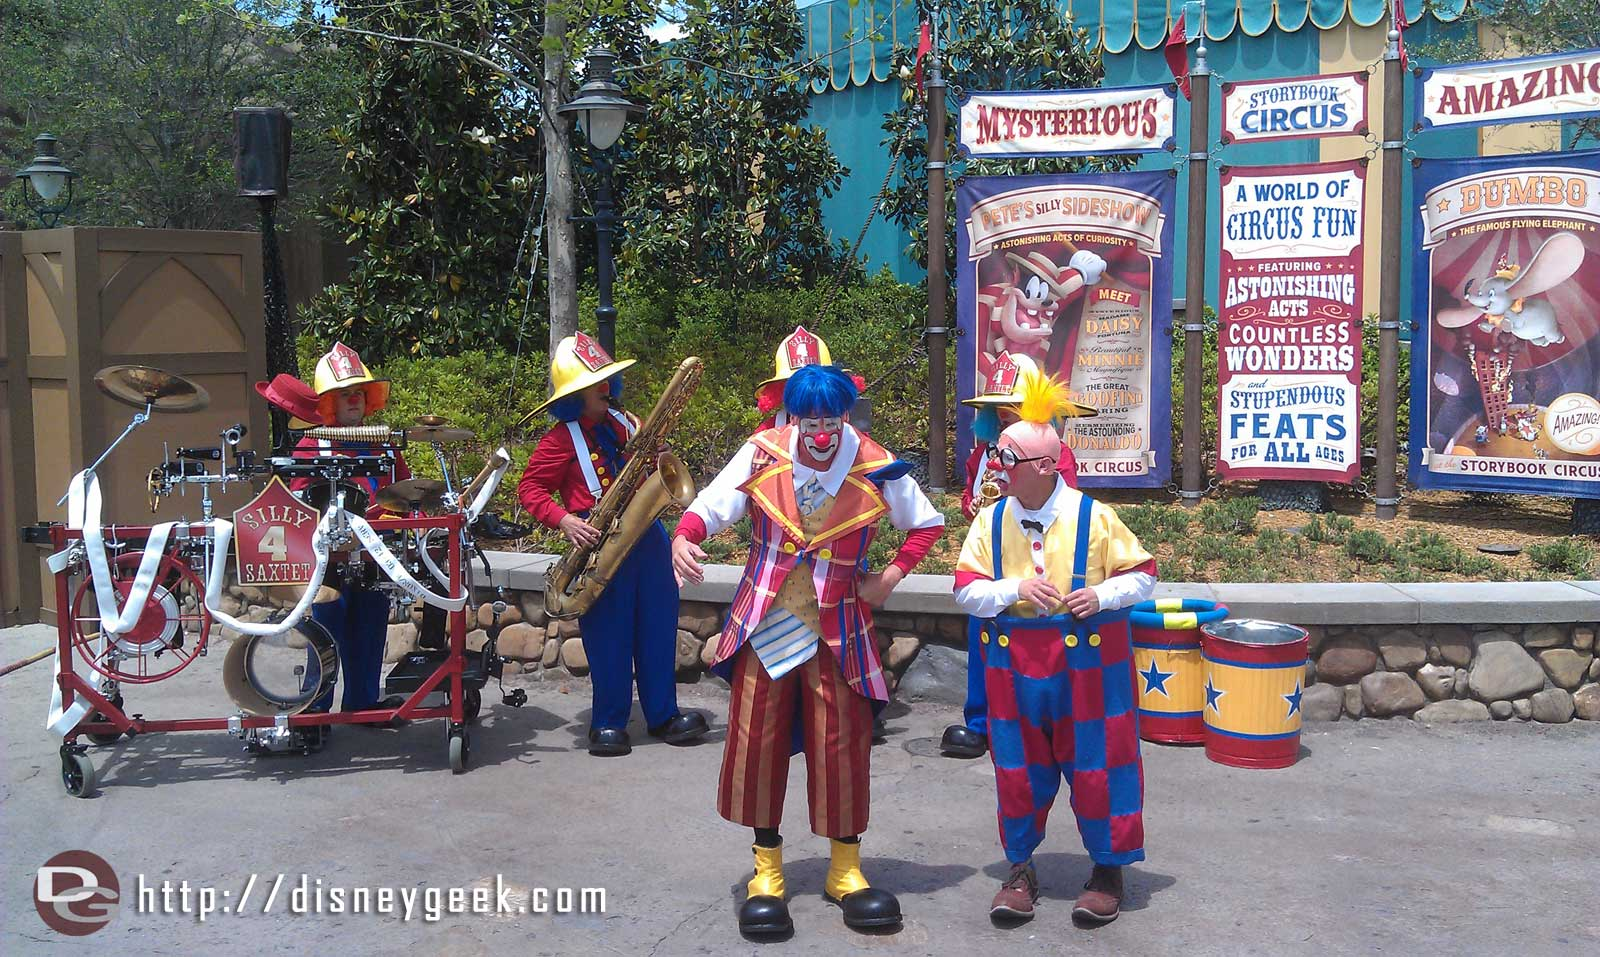 The Giggle Gang in Storybook Circus